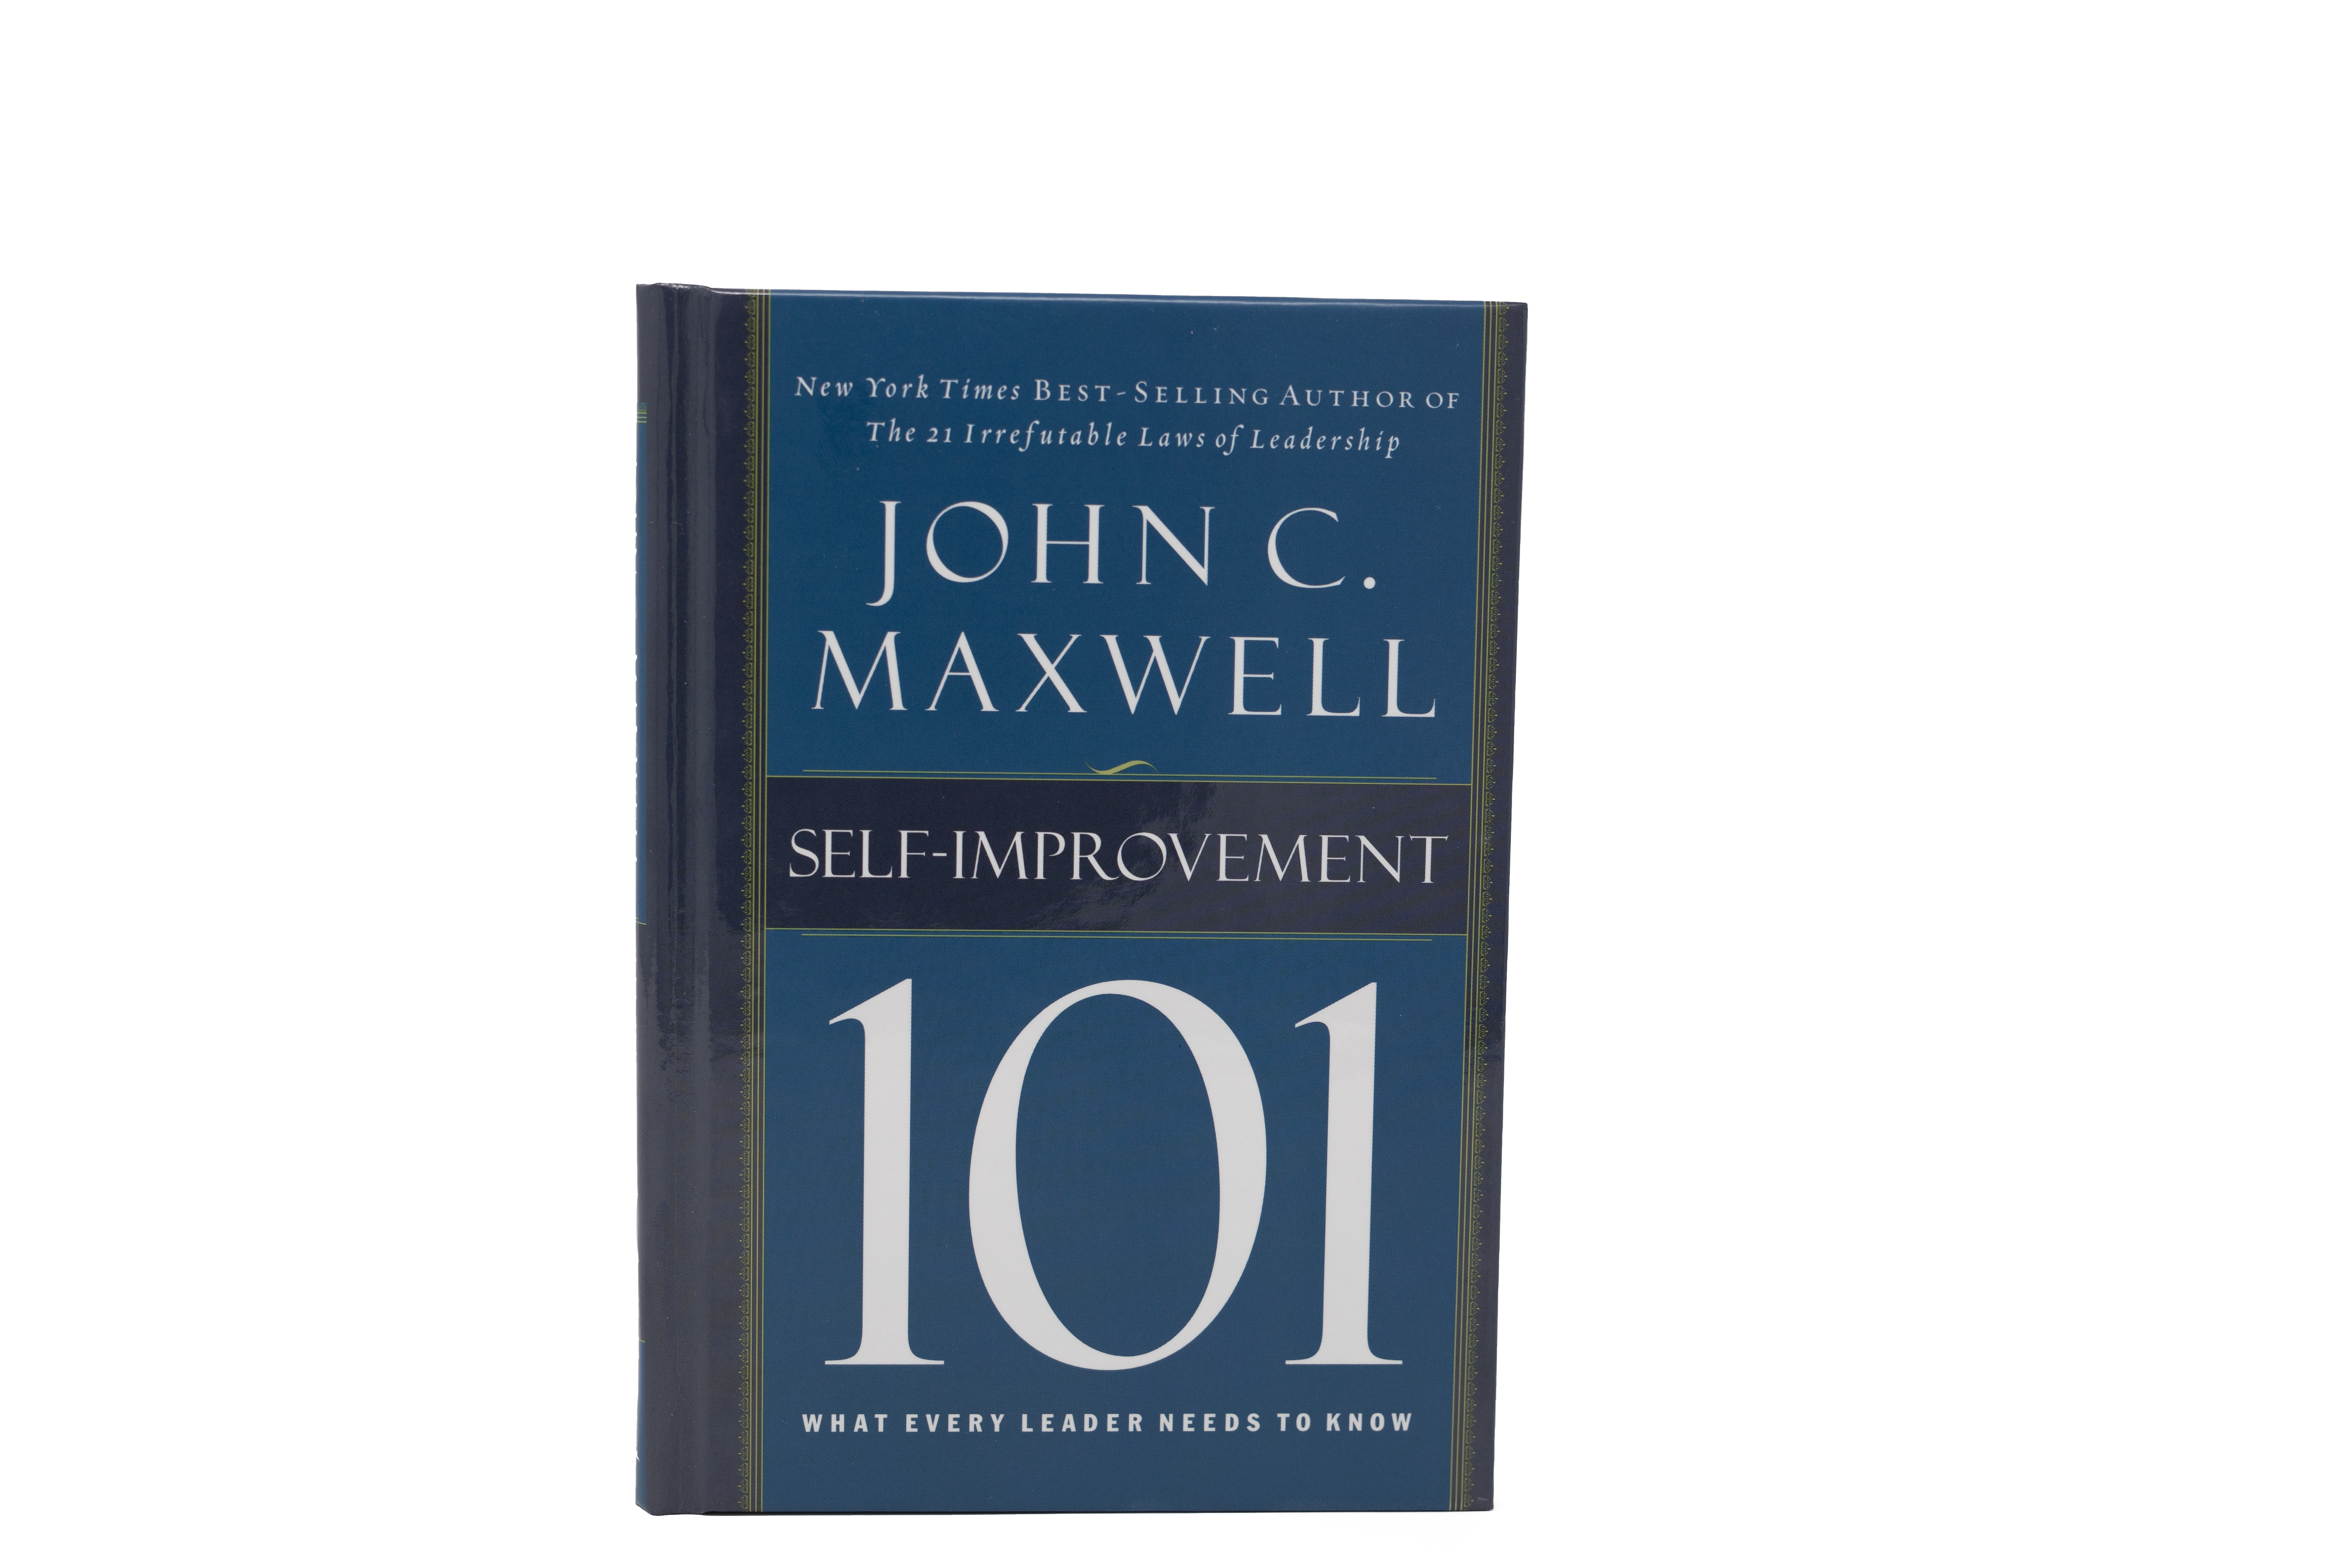 What Every Leader Needs to Know Self-Improvement 101